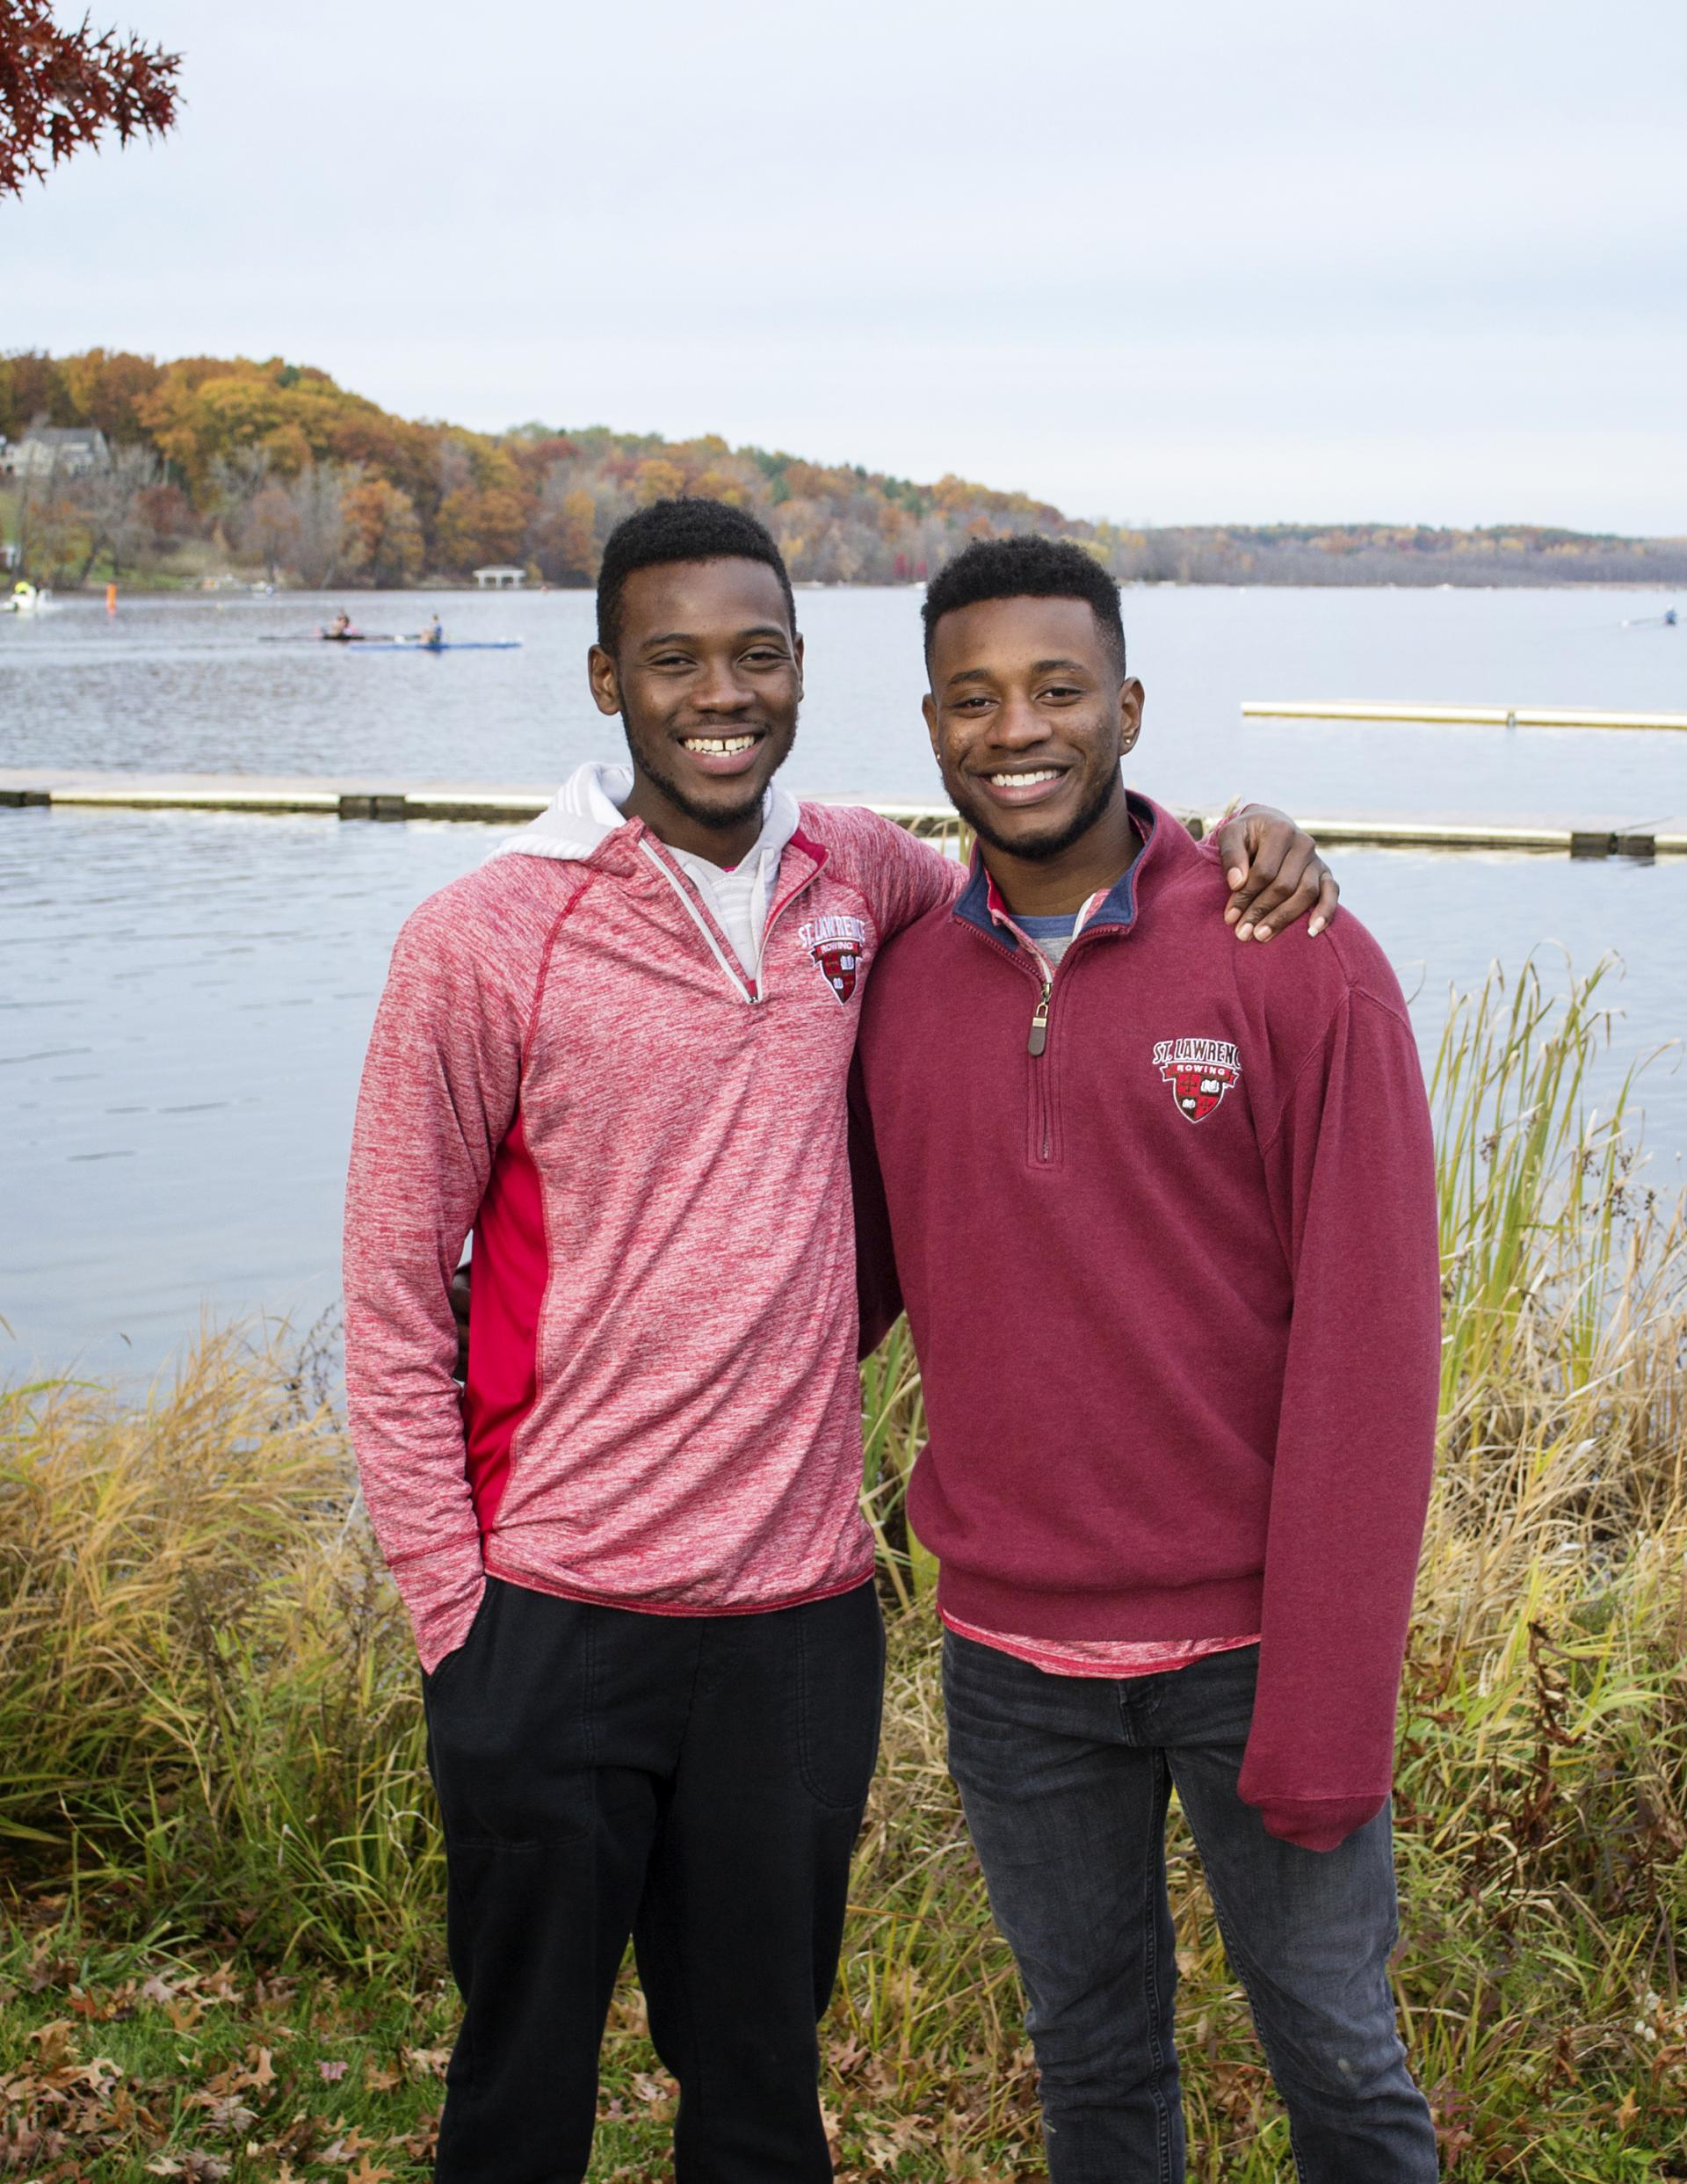 Bubaccar Fofana '18 (left) has been sharing his love of rowing by recruiting his HEOP friends to the men's crew team. After spending the summer learning how to swim, Muhammad Tunkara '18 (right) joined the squad, too.